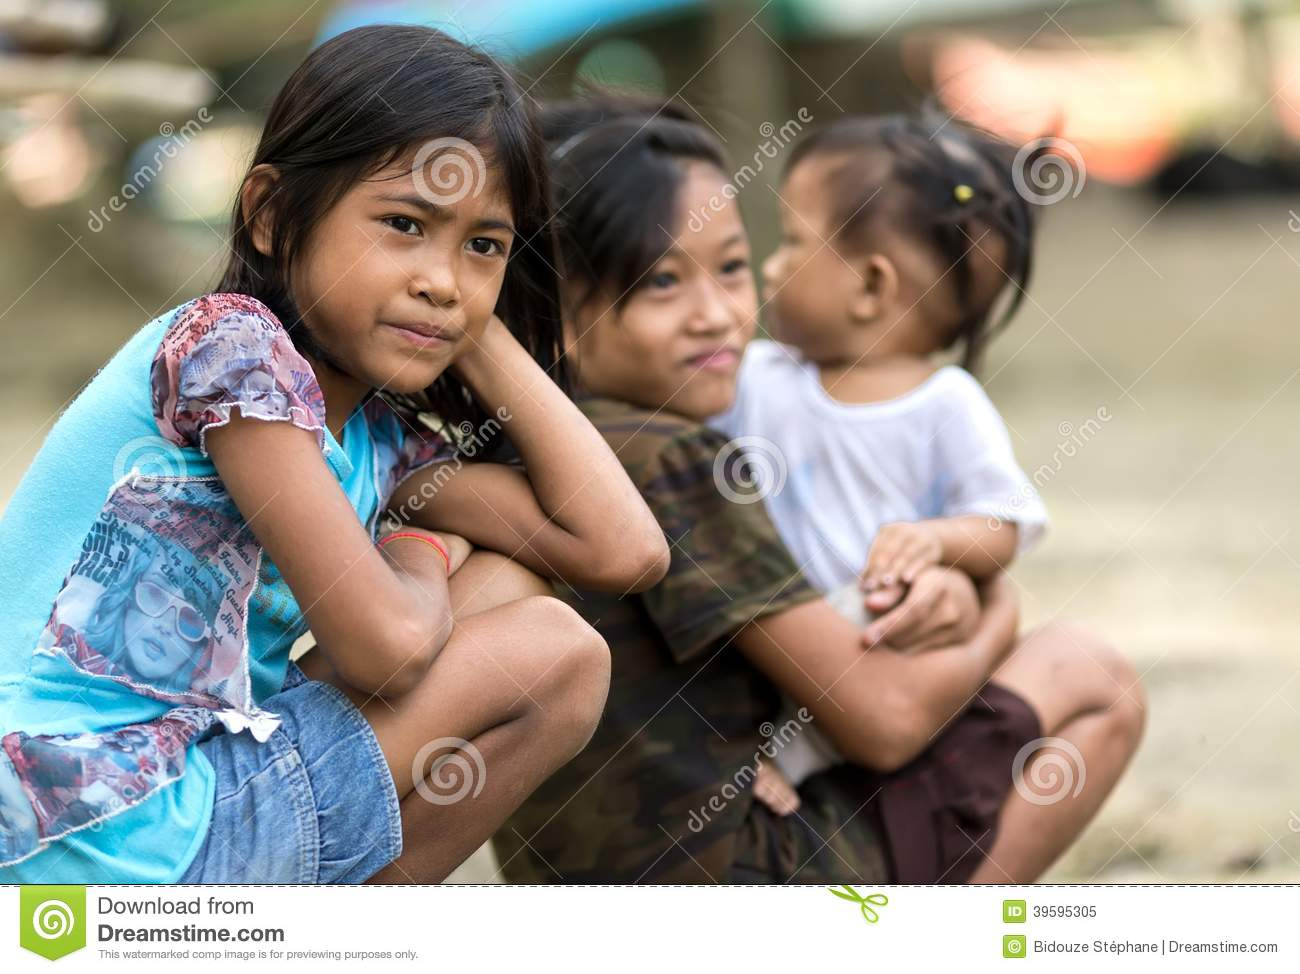 early exposure of poor filipino children Children10 studies show that early childhood educational programs can generate learning gains in the short-run and, in some cases, improve the long-run life chances of poor chil.